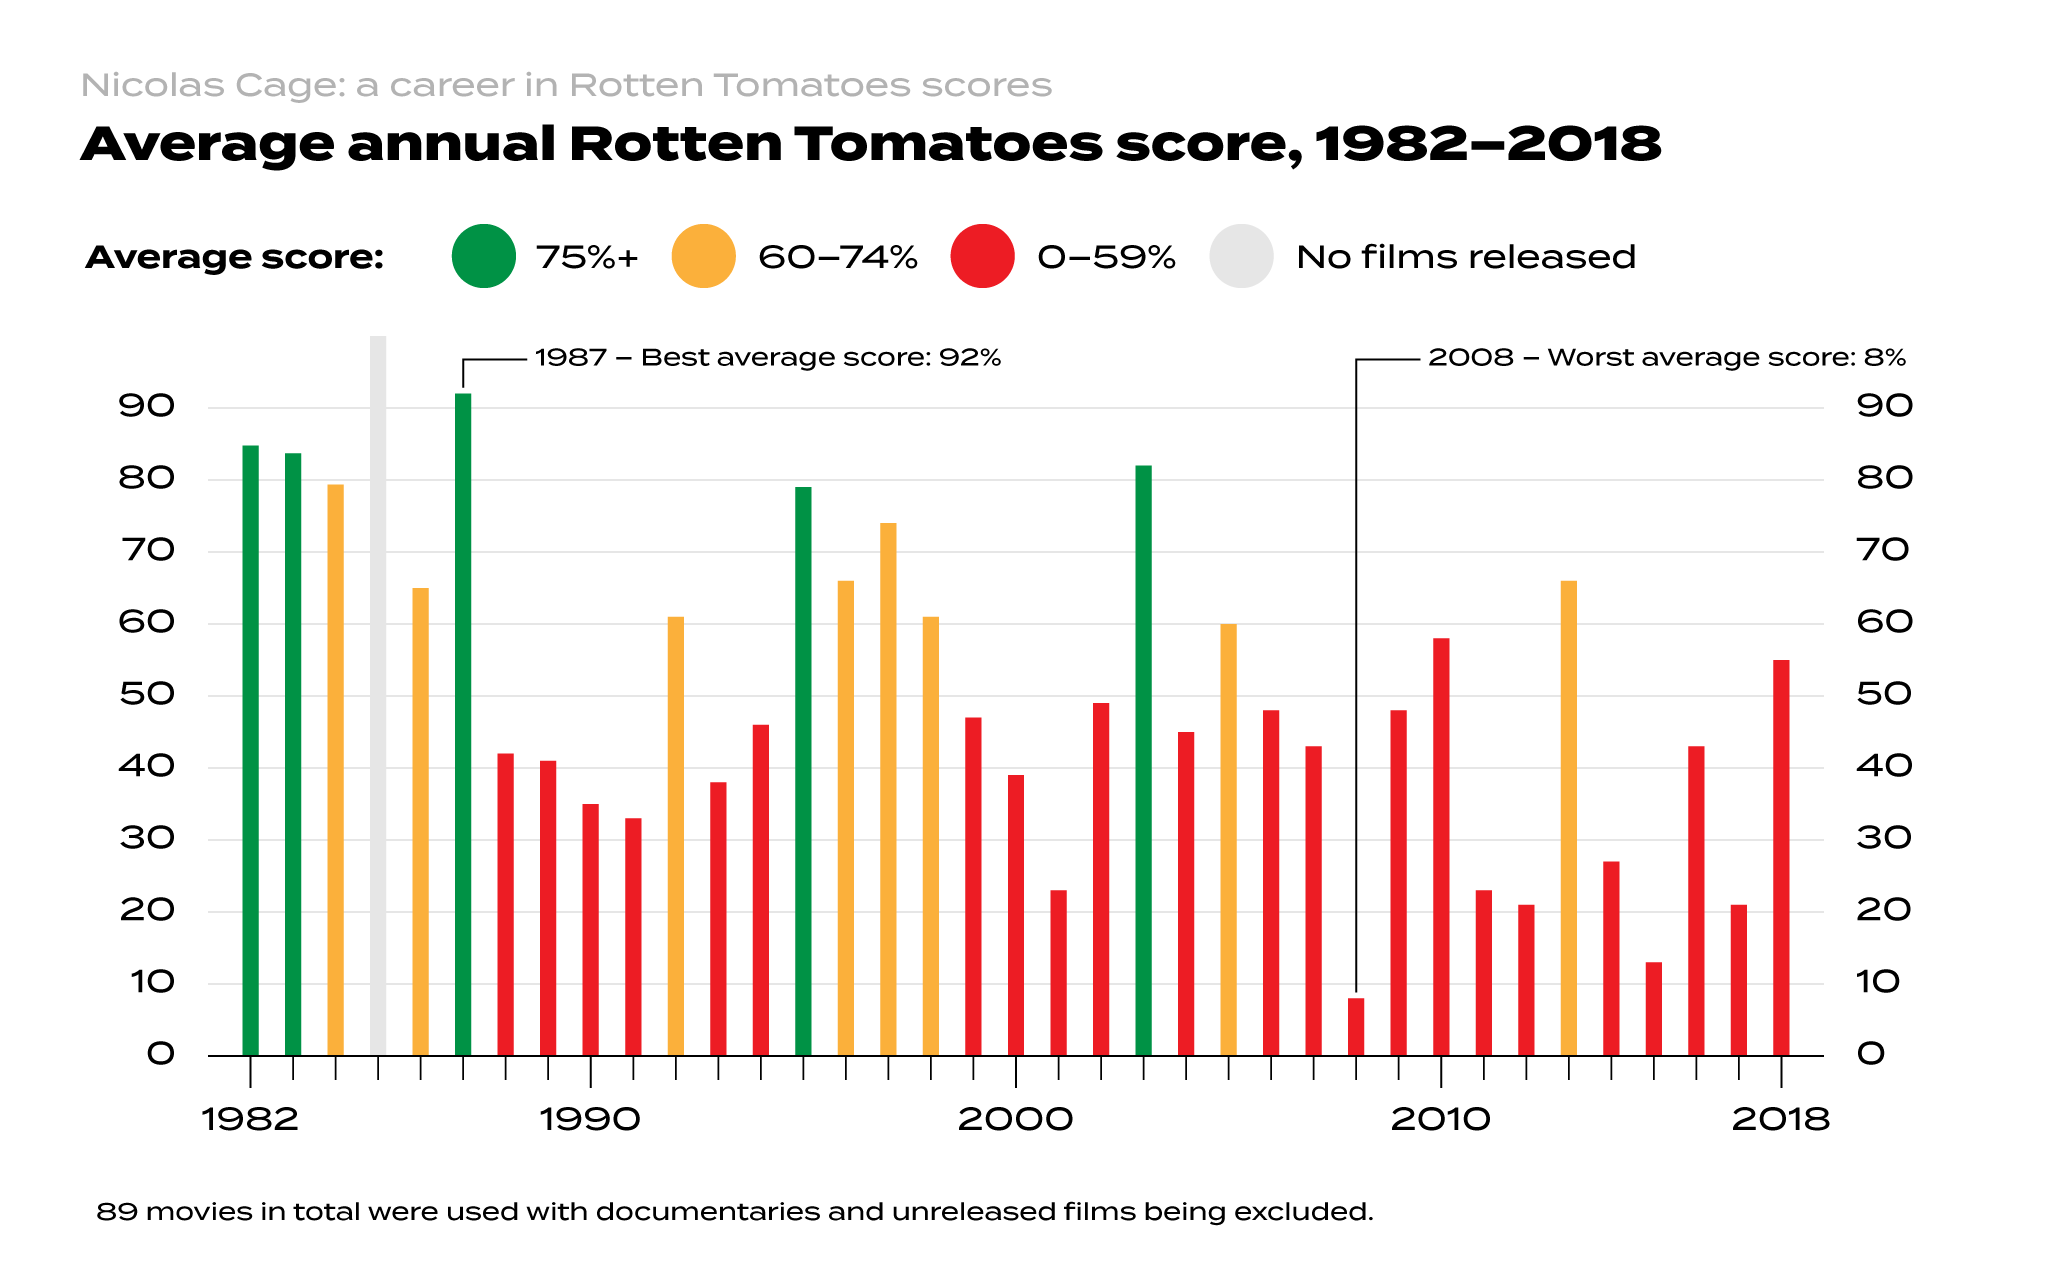 Nic Cage's career in Rotten Tomatoes scores [OC] Data